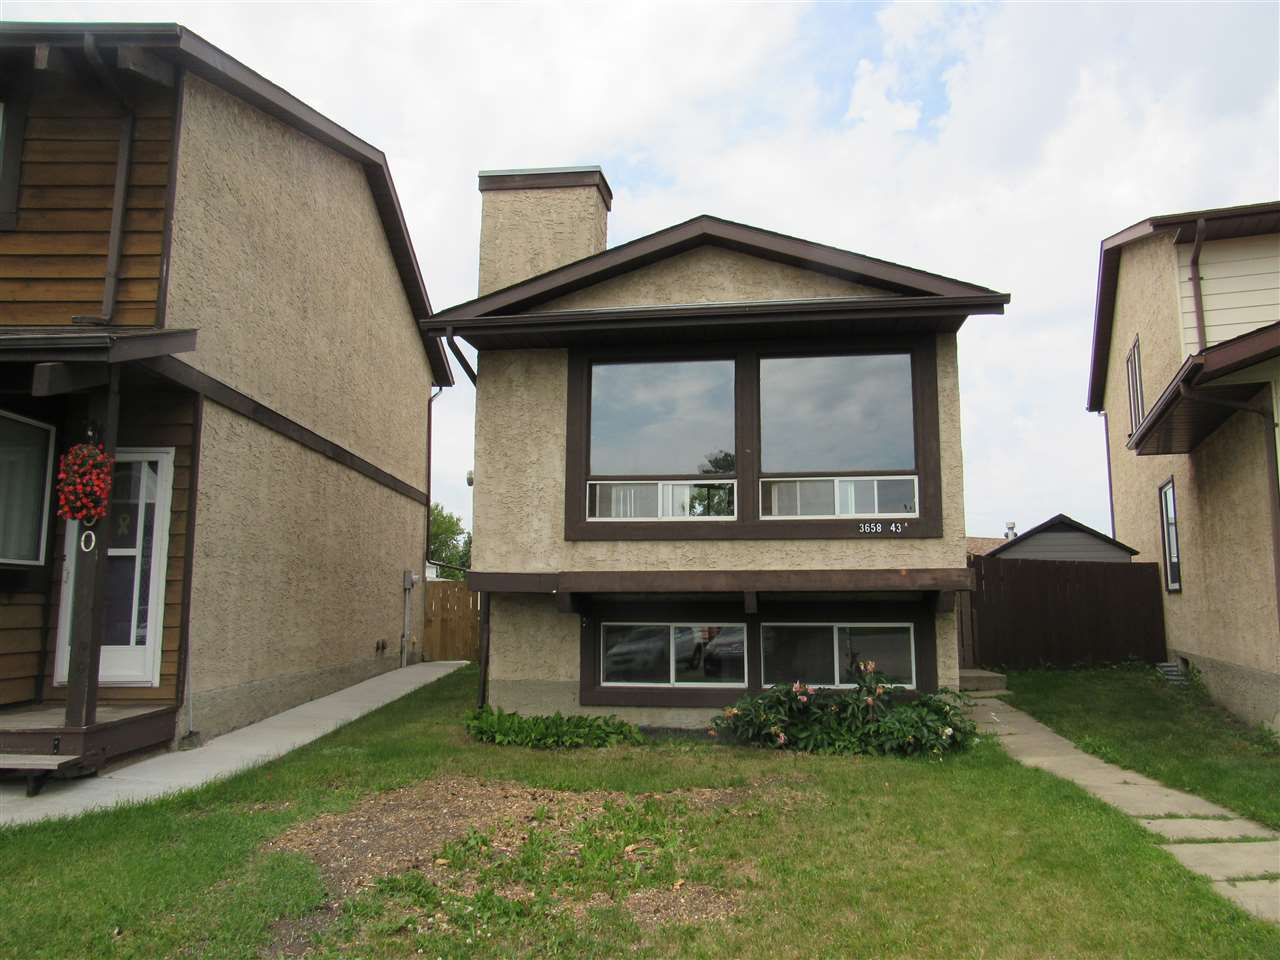 Photo 1: 3658 43A Avenue in Edmonton: Zone 29 House for sale : MLS(r) # E4072229